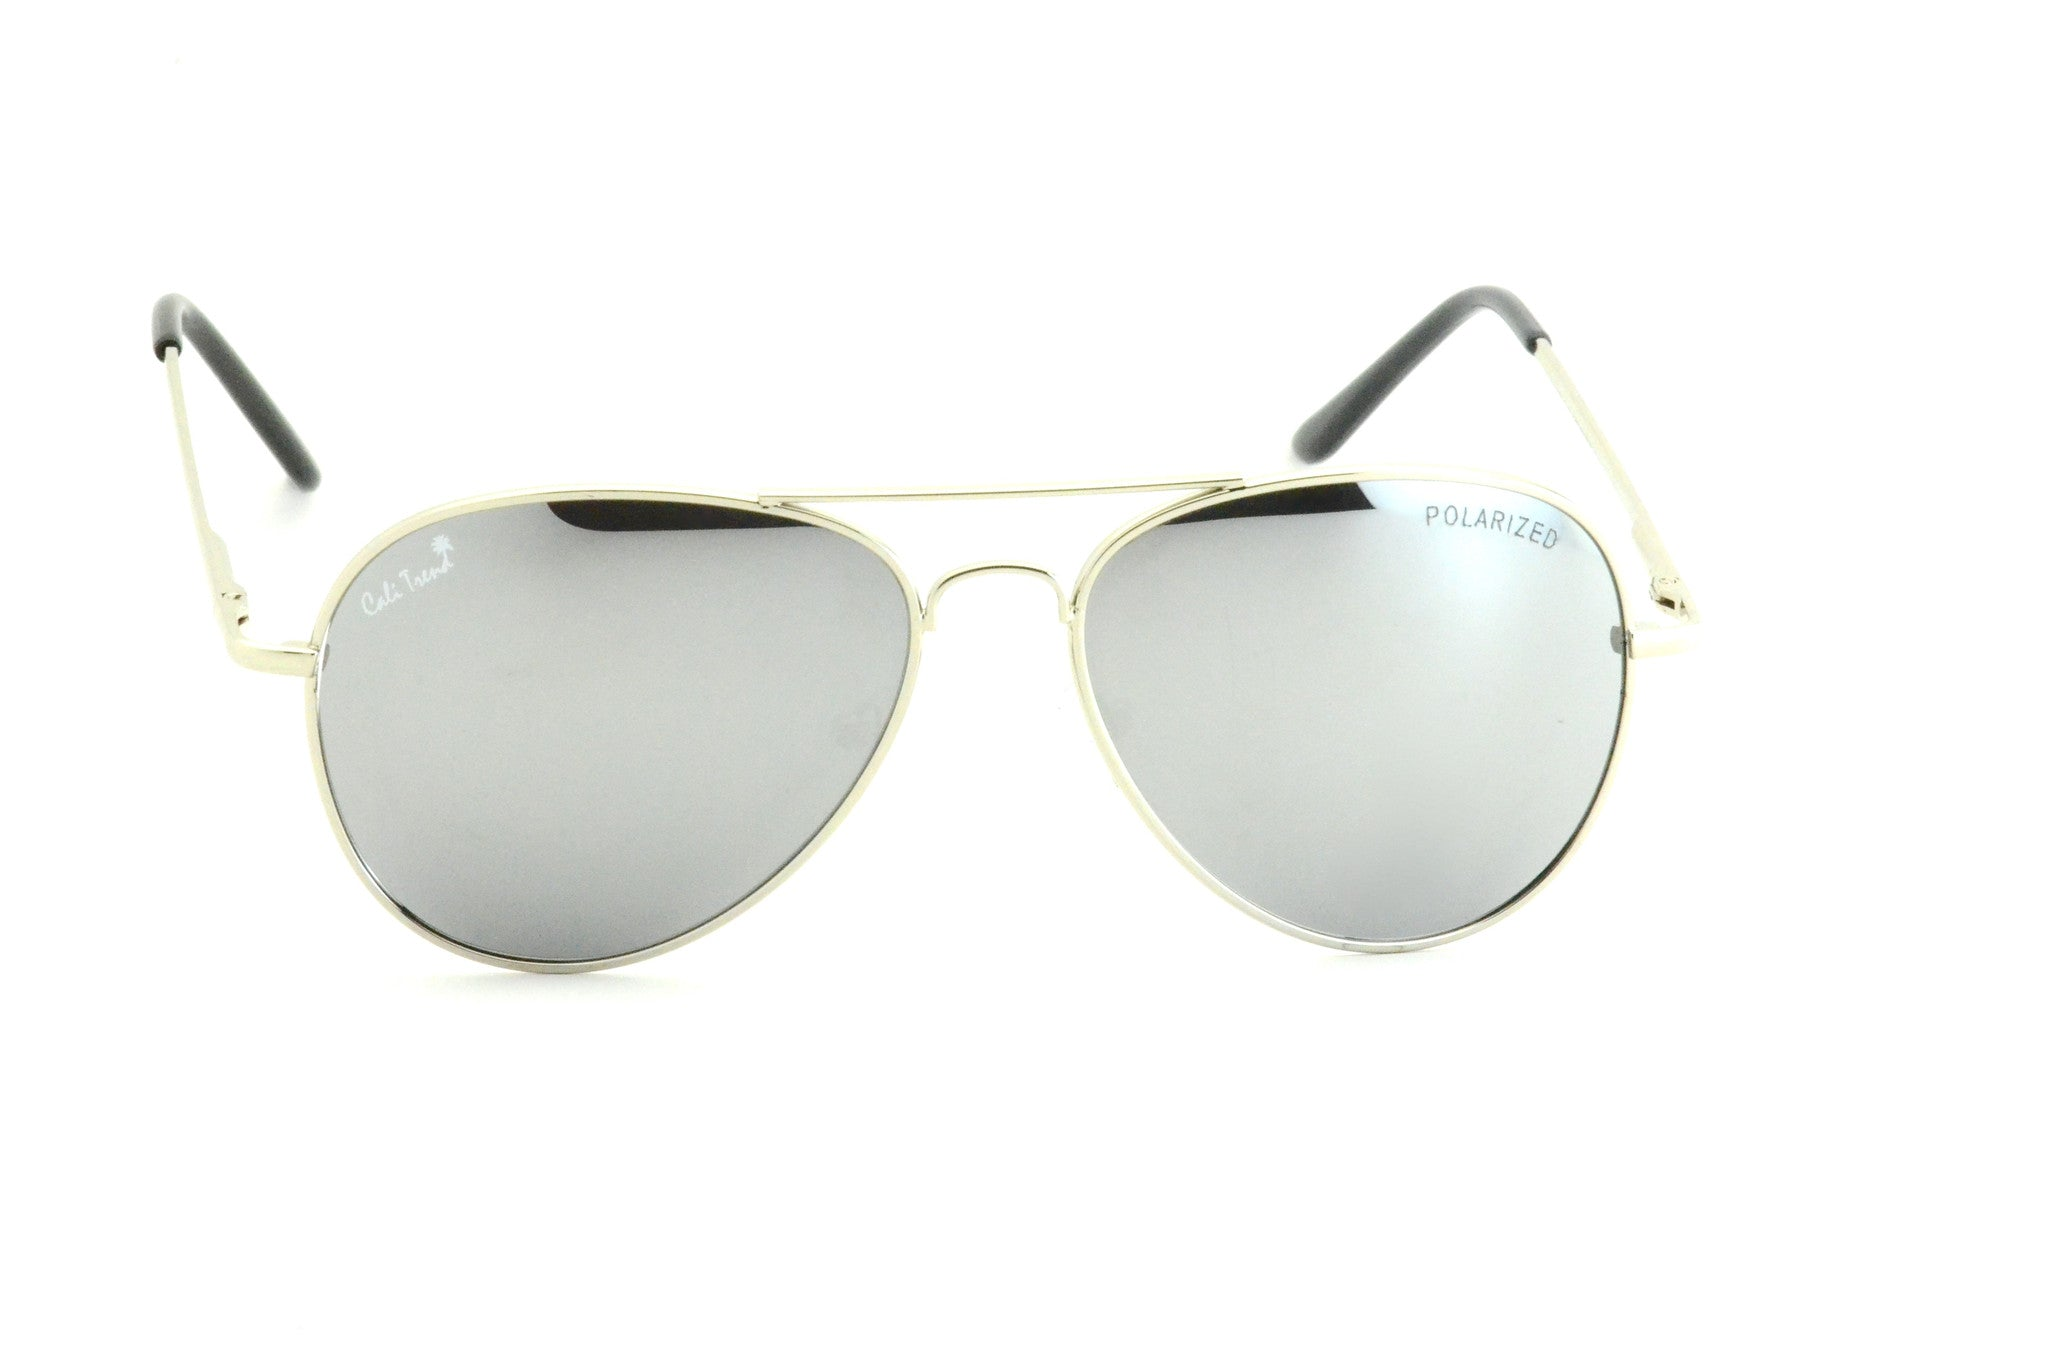 0c720e3991861 Polarized Silver Mirrored Reflective Aviator Sunglasses Large Metal Frame  Spring Hinges